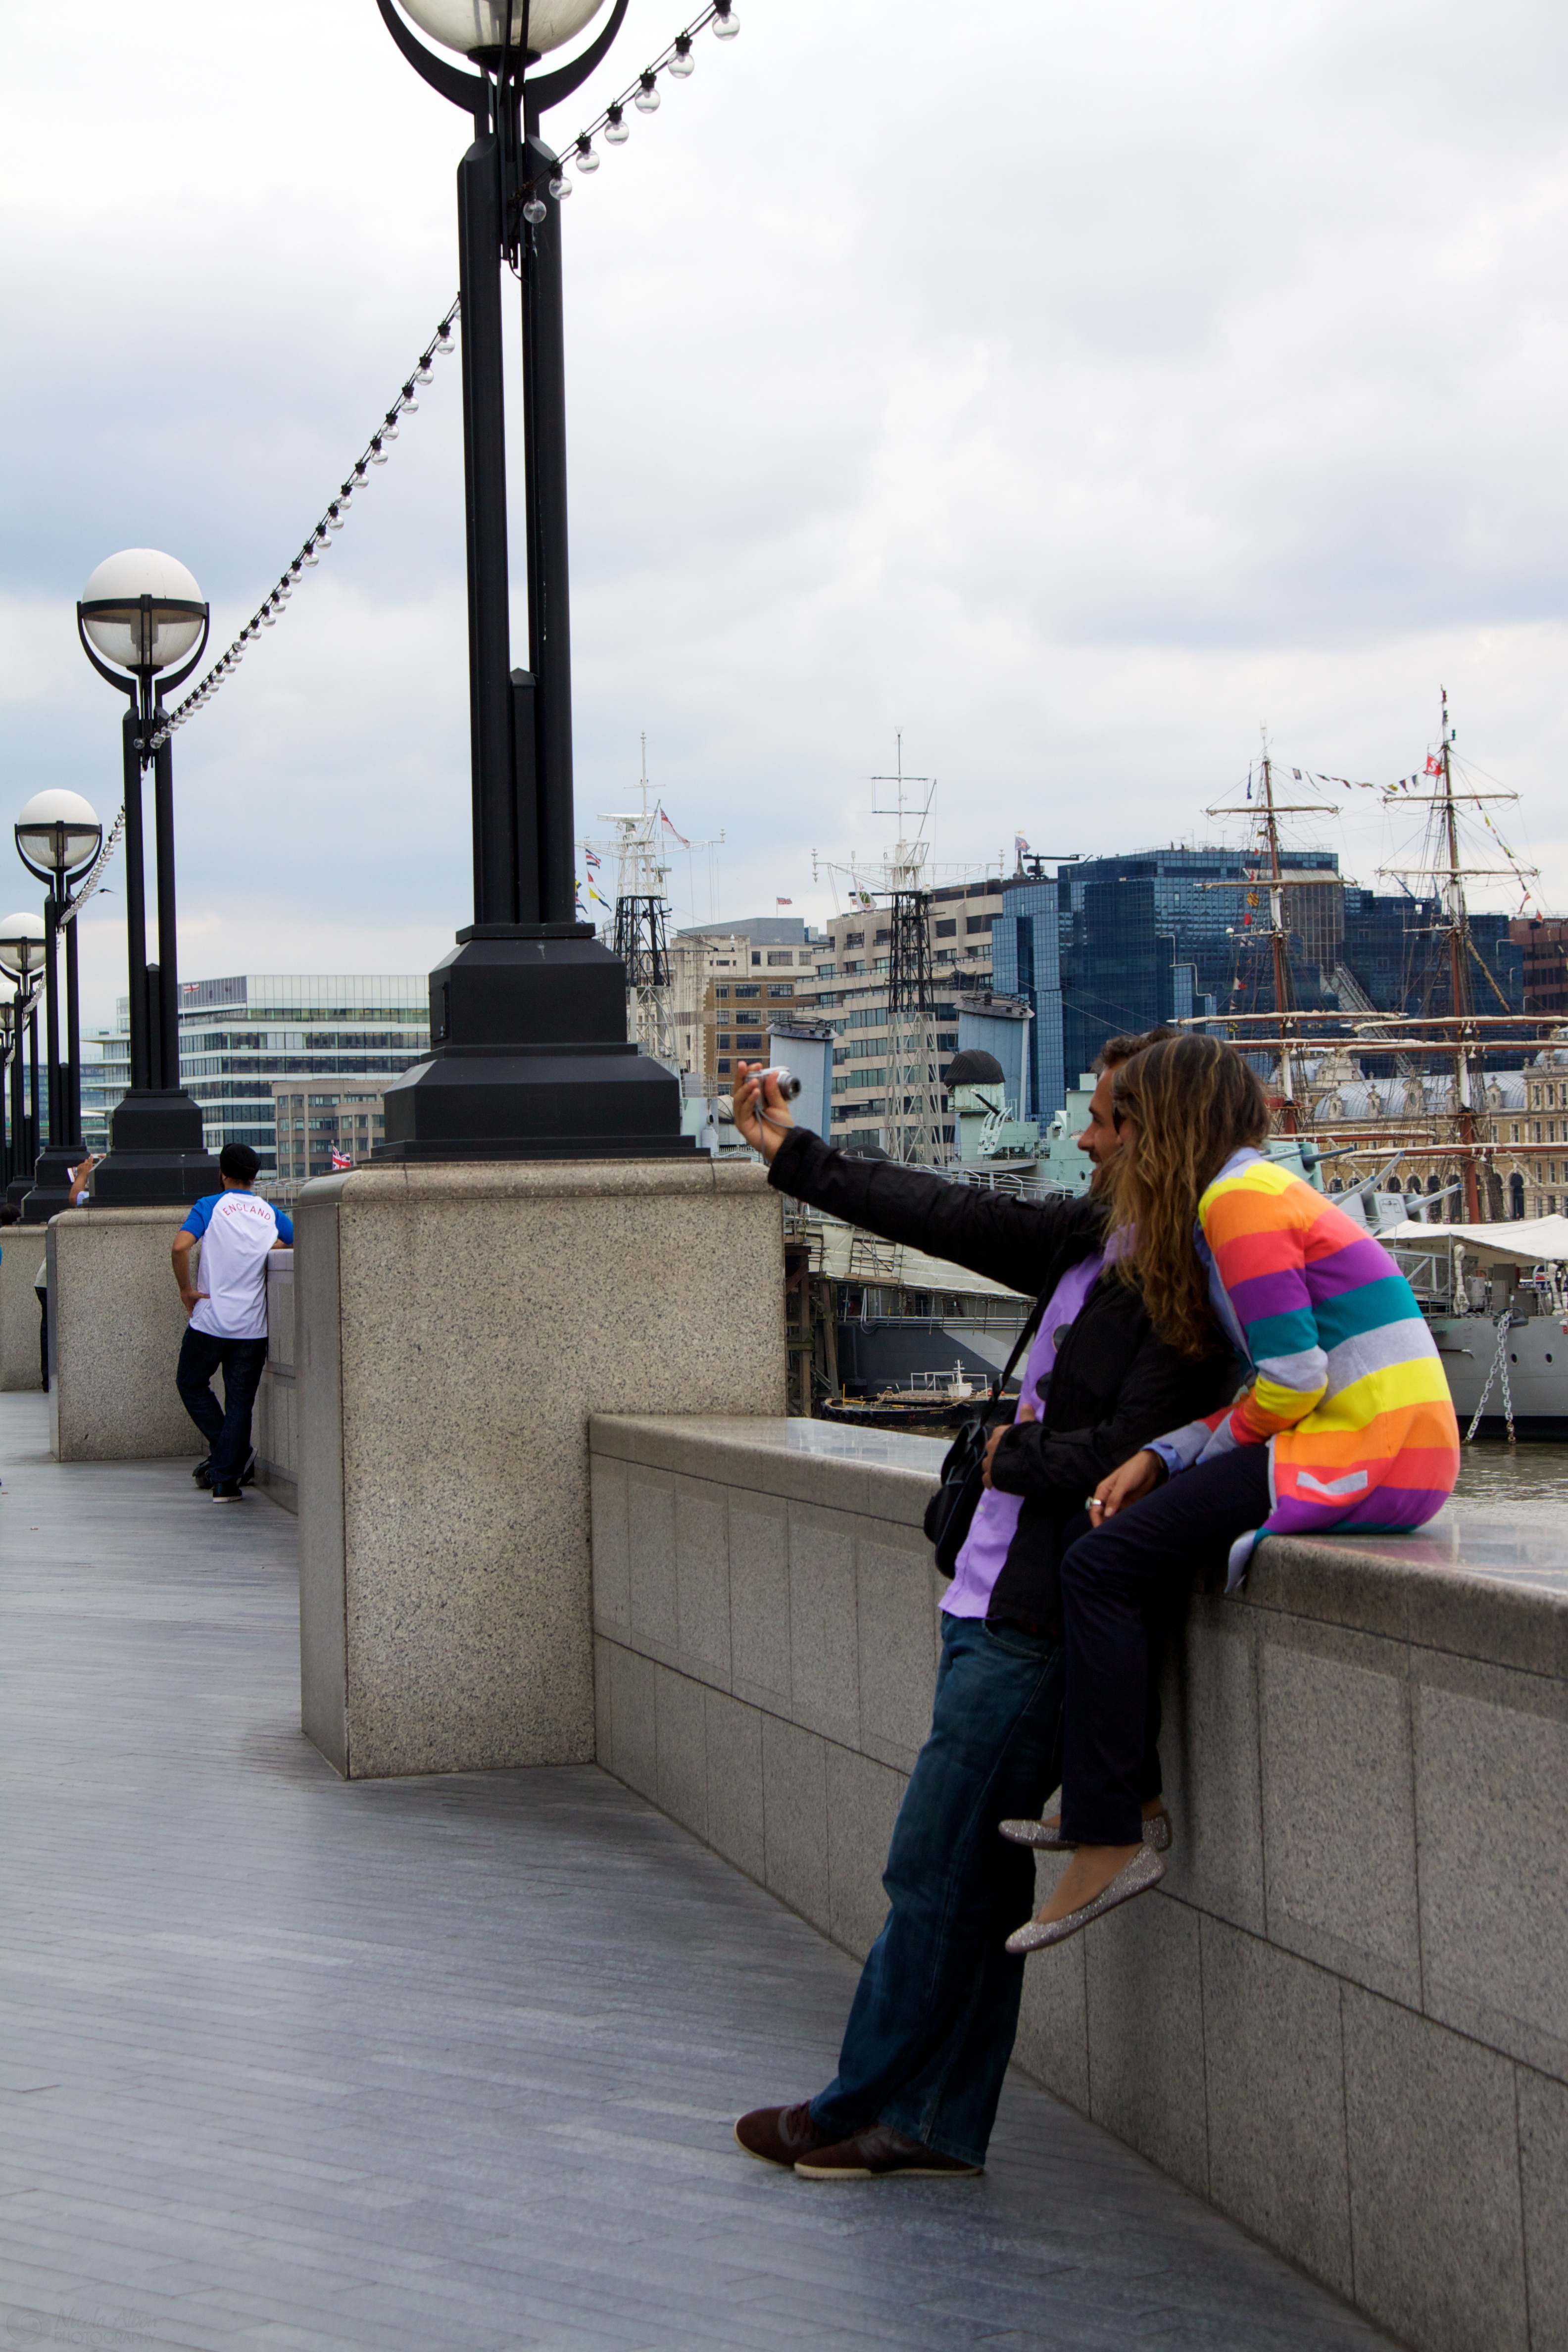 A couple taking their own photo outside City Hall in London